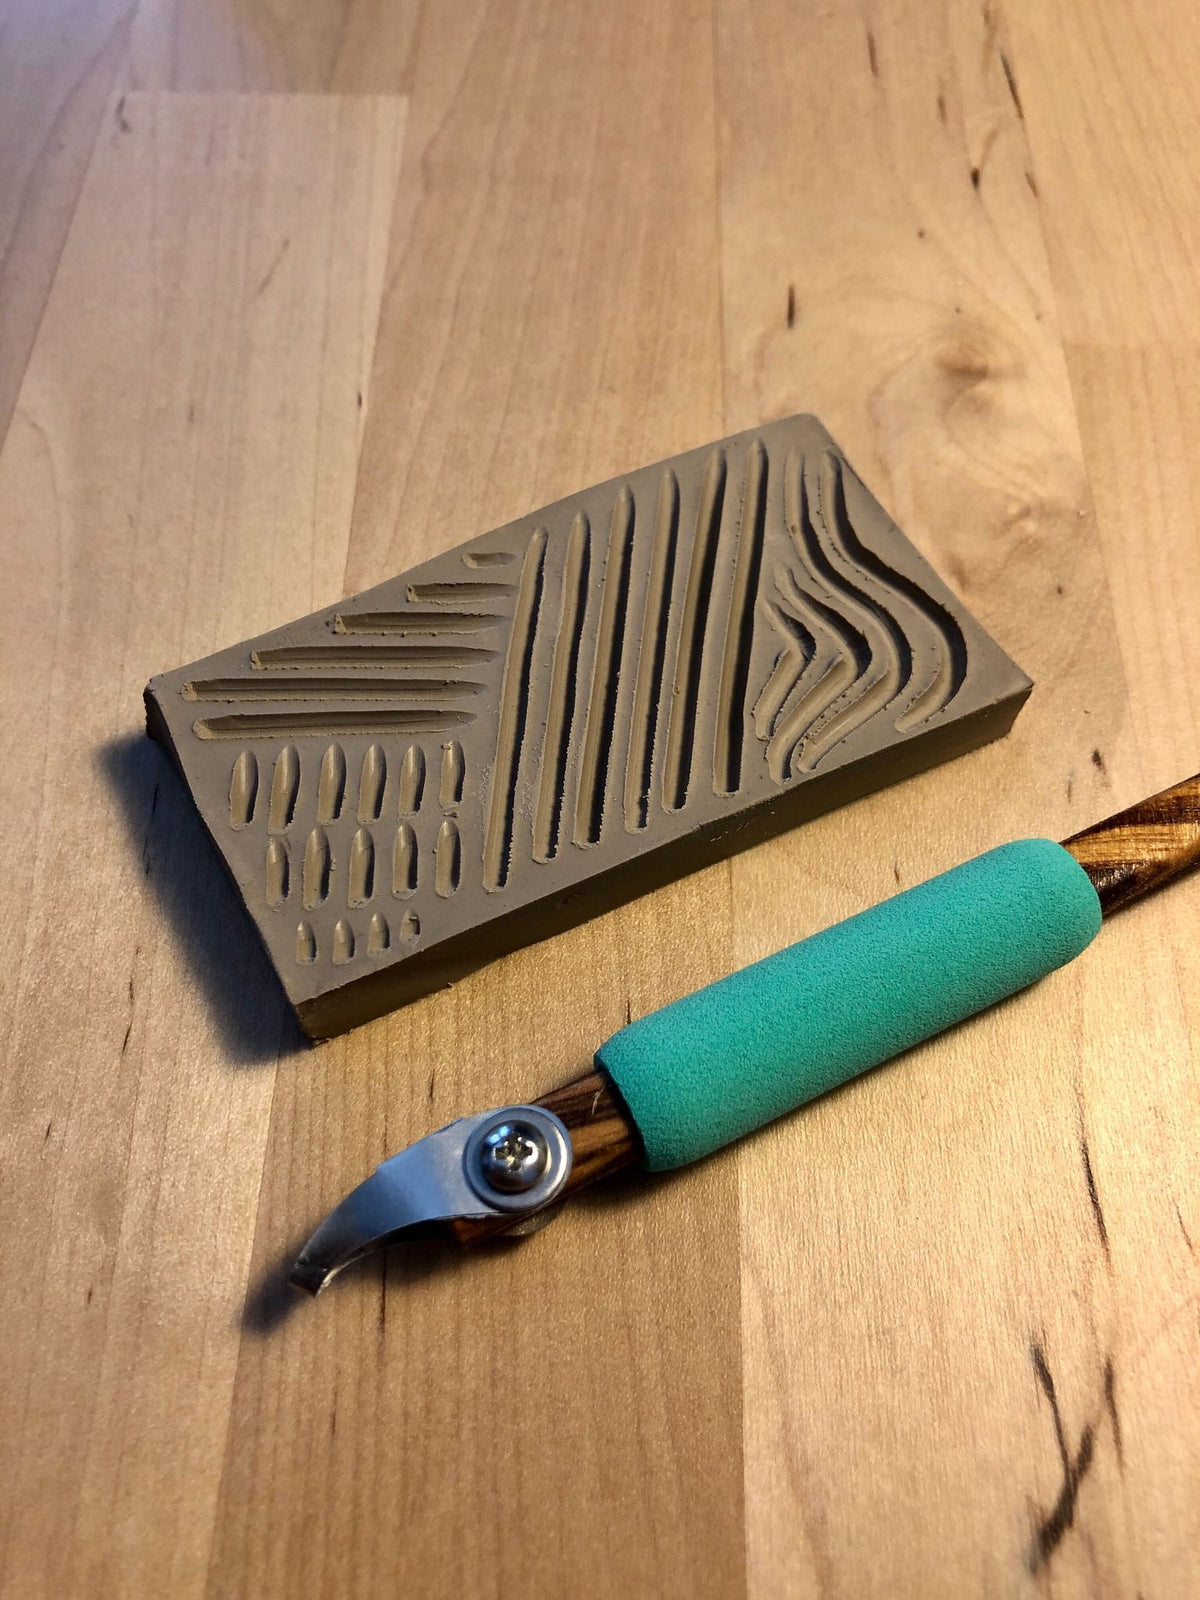 DiamondCore P13 Curved U-Tip 1mm Zebrawood Pencil Carver